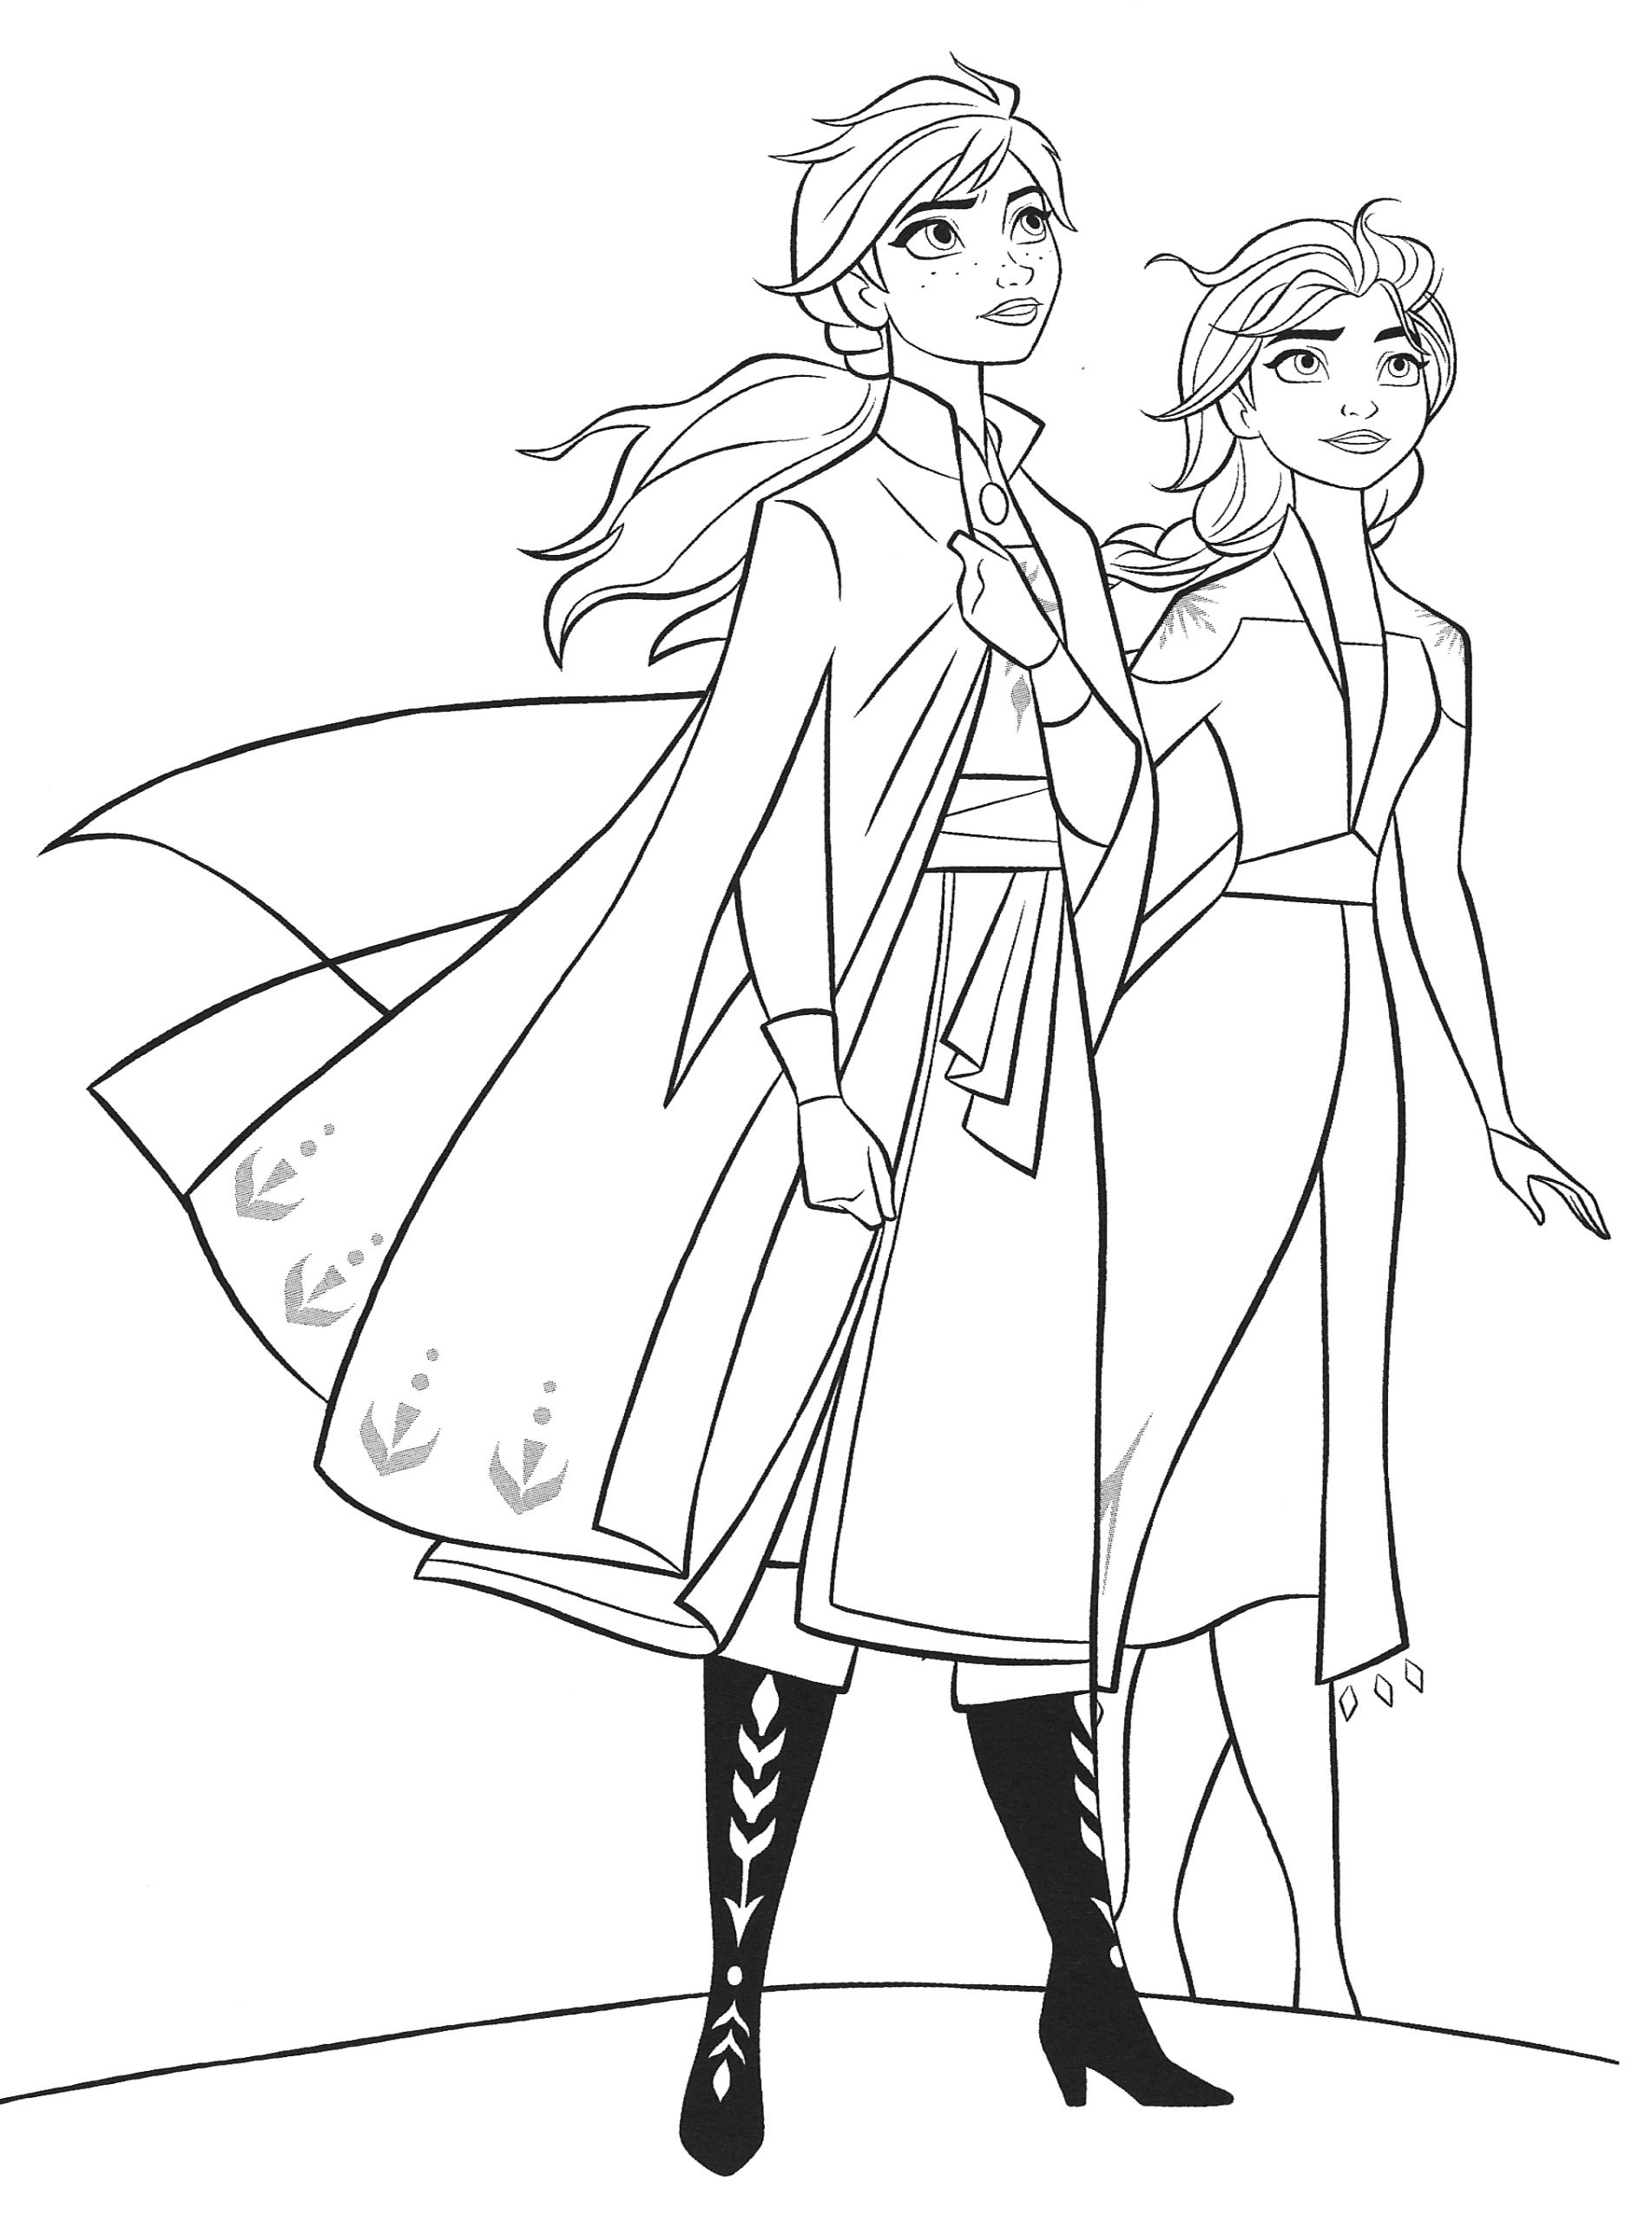 1038 frozen 2 elsa and anna coloring pages